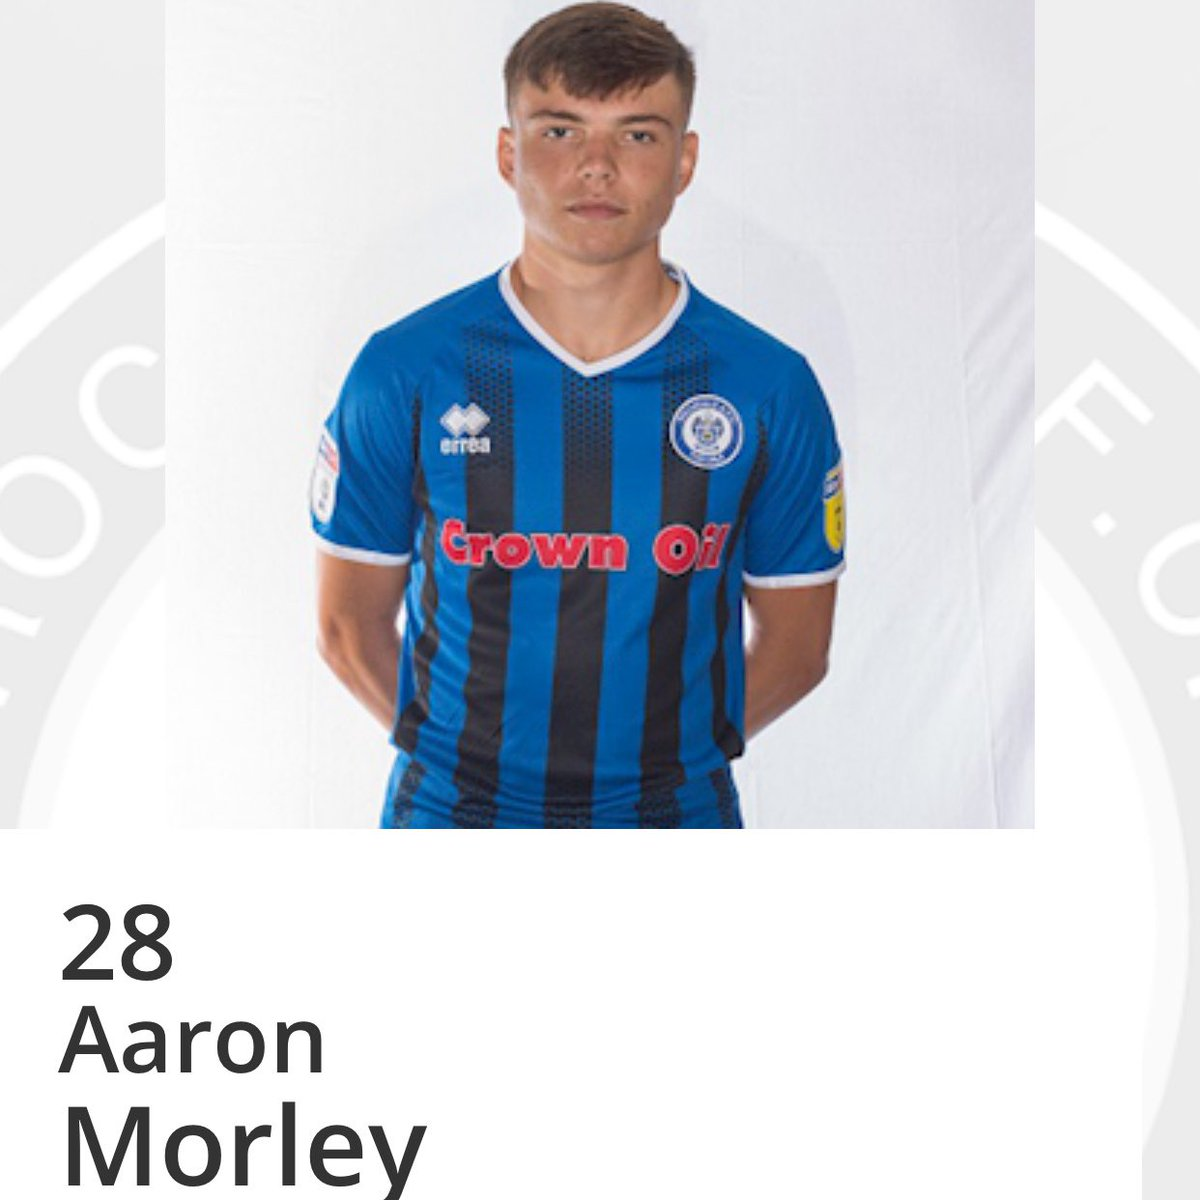 🥳| Wishing our man @Aaronmorley7 a very Happy 19th Birthday. Have a great day 🎉 #FullNinetyFamily 💙 #28